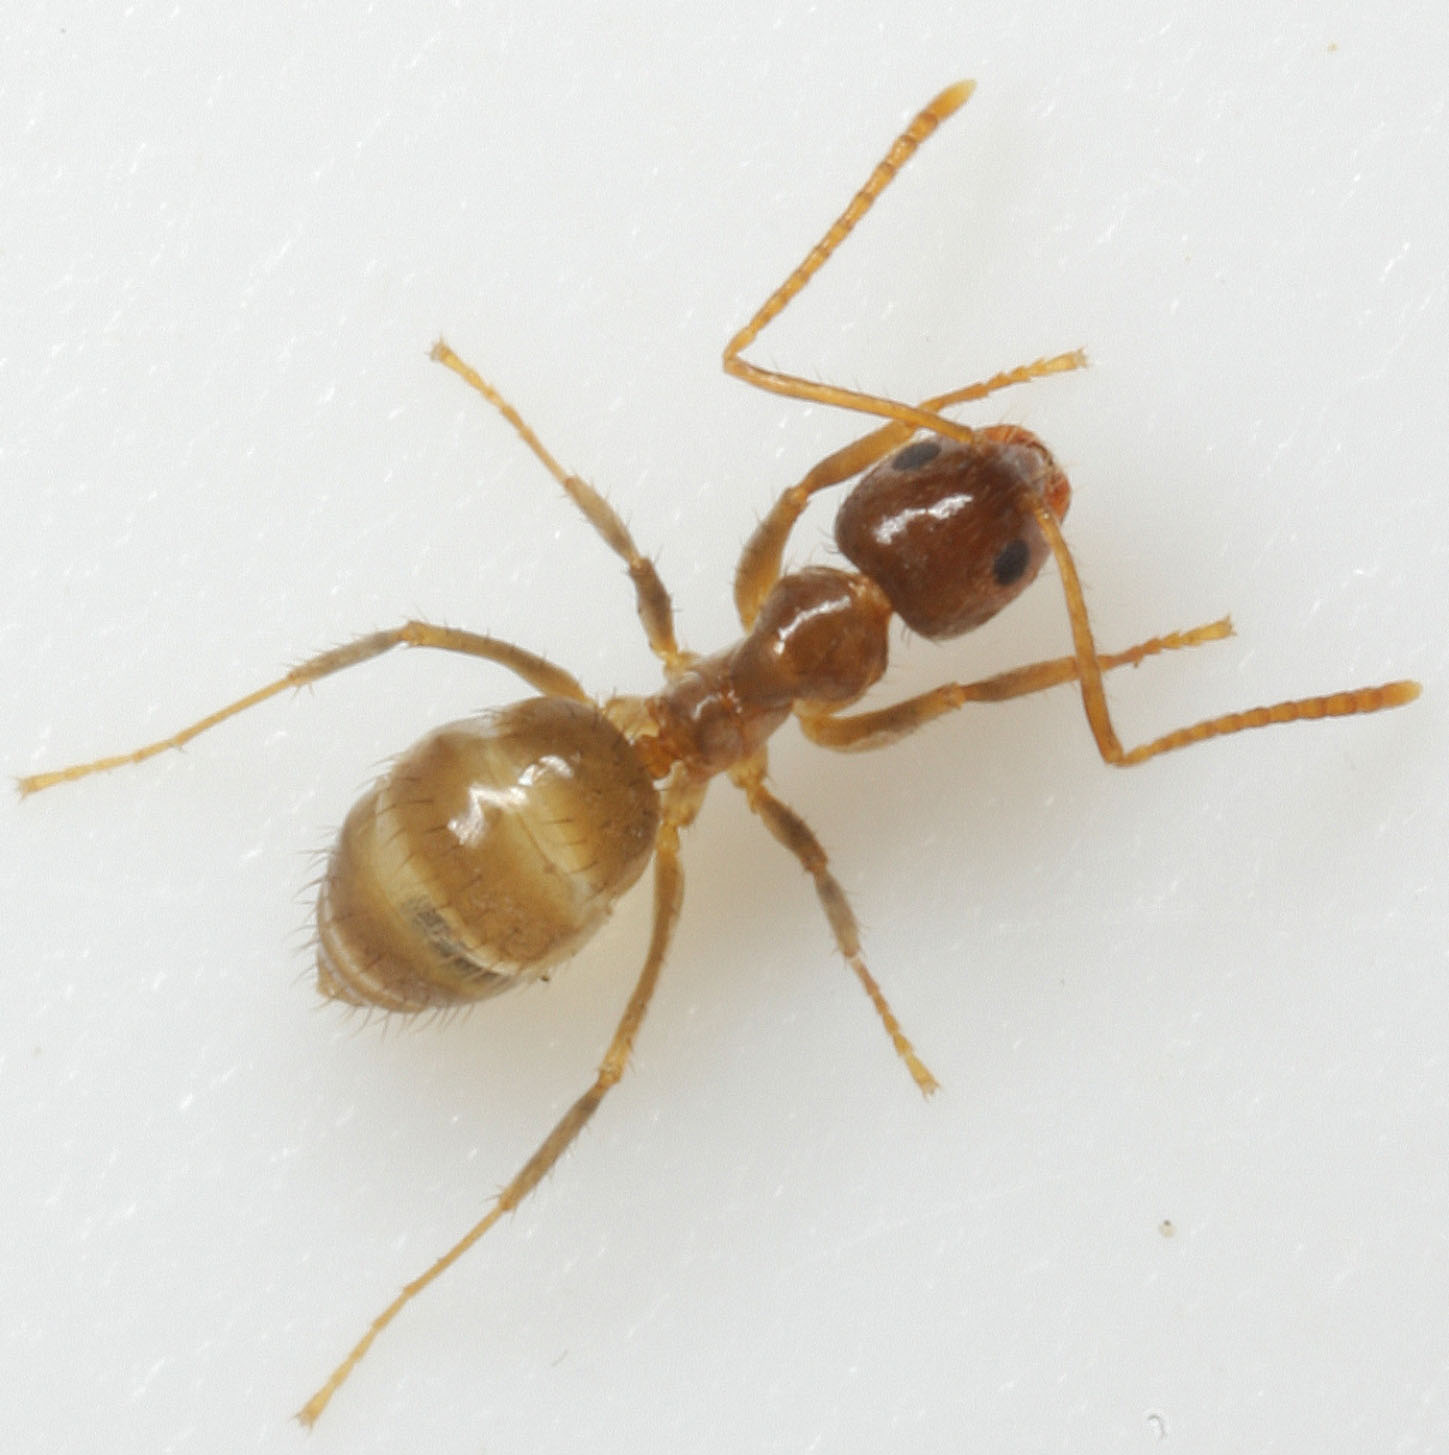 Tiny Ants In Home Central New York